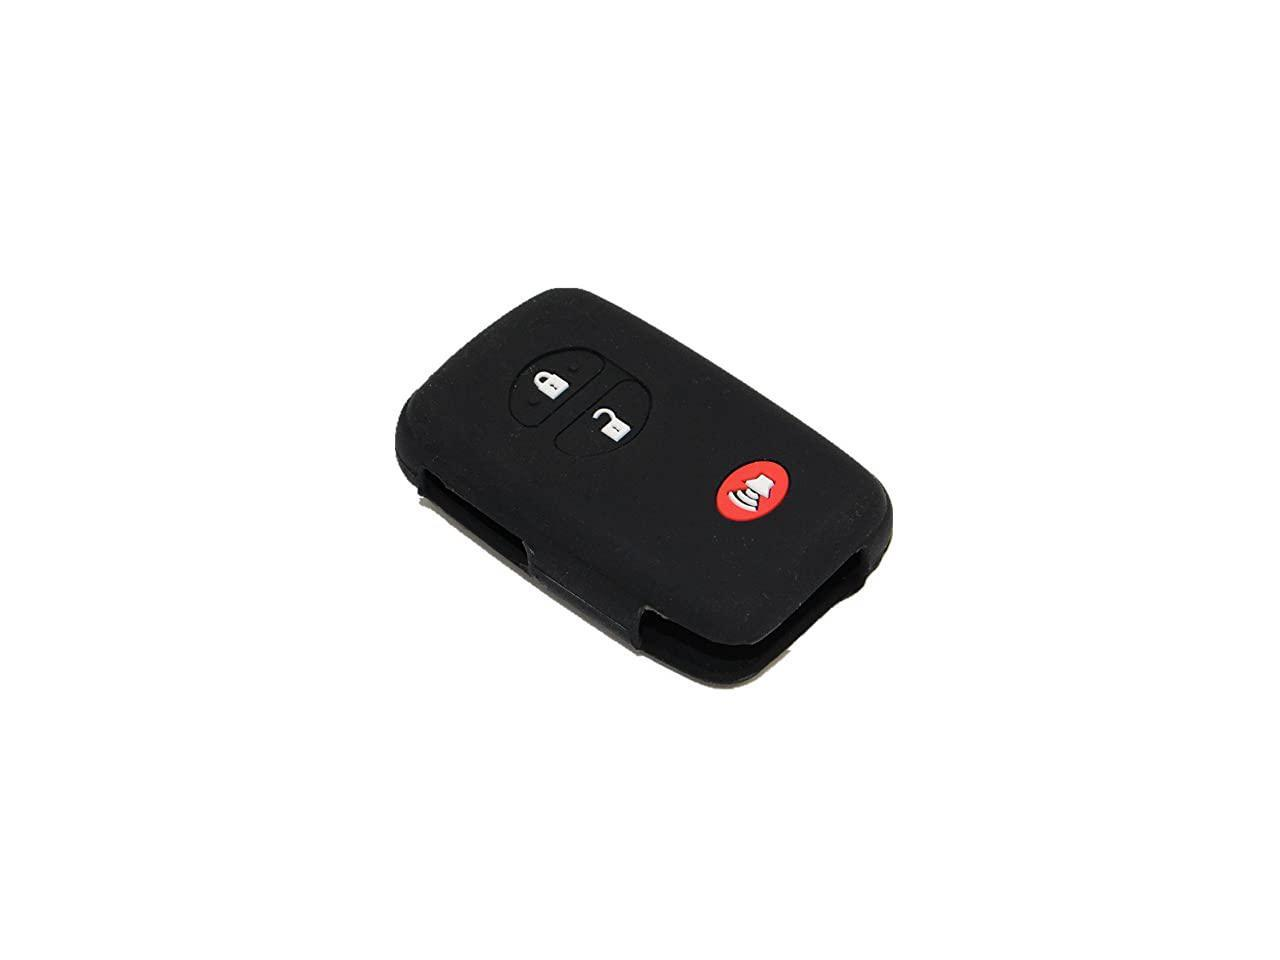 New 3 buttons Black Silicone Rubber Remote Key Cover Holder Key Fob Skin Cover for 4runner Venza Avalon Land Cruiser Camry